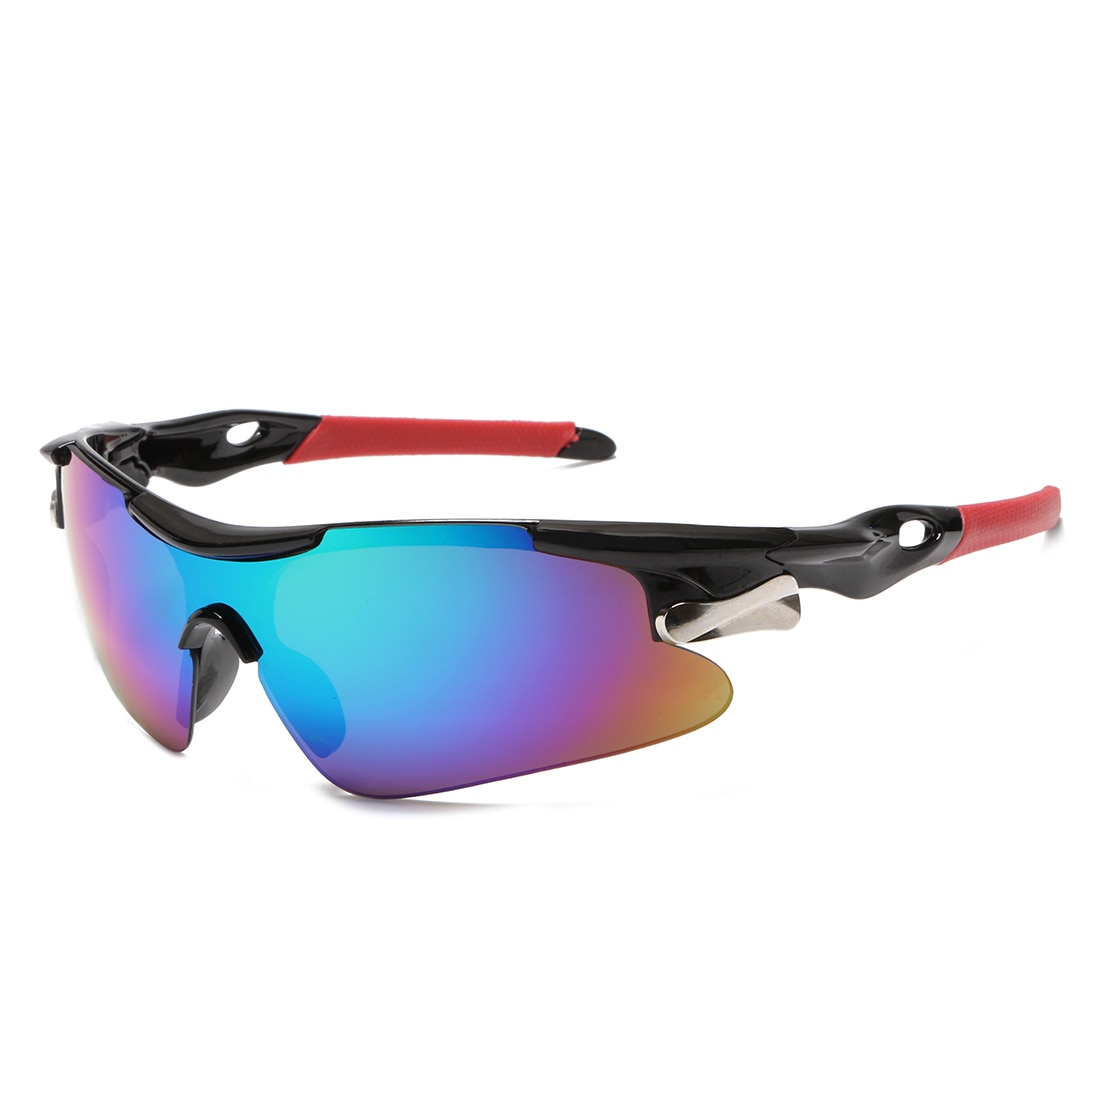 2021 UV400 Cycling Glasses Men Women Outdoor Sport MTB Bicycle Glass Windproof Sunglasses Driving Gl